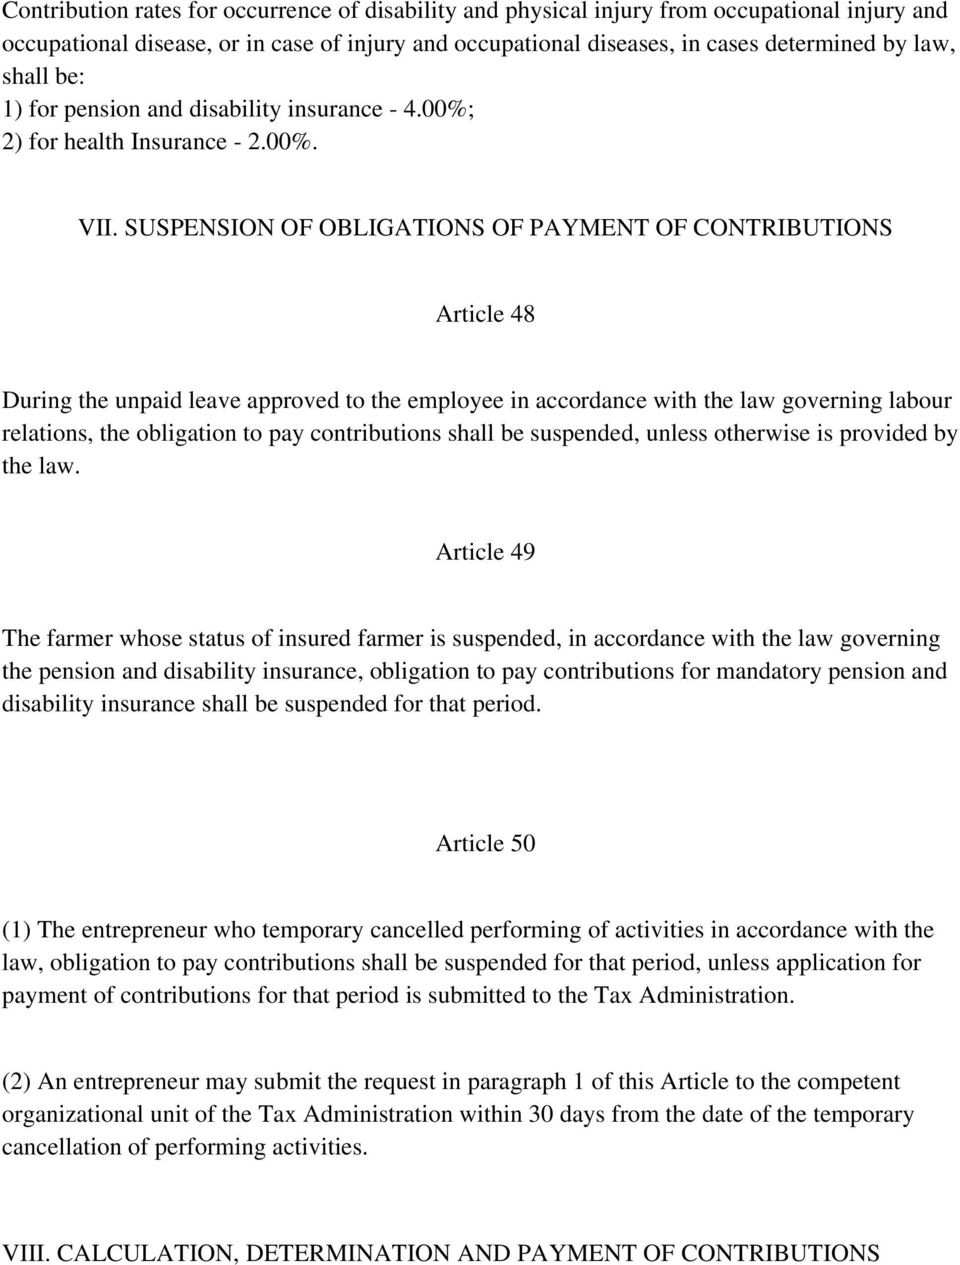 SUSPENSION OF OBLIGATIONS OF PAYMENT OF CONTRIBUTIONS Article 48 During the unpaid leave approved to the employee in accordance with the law governing labour relations, the obligation to pay